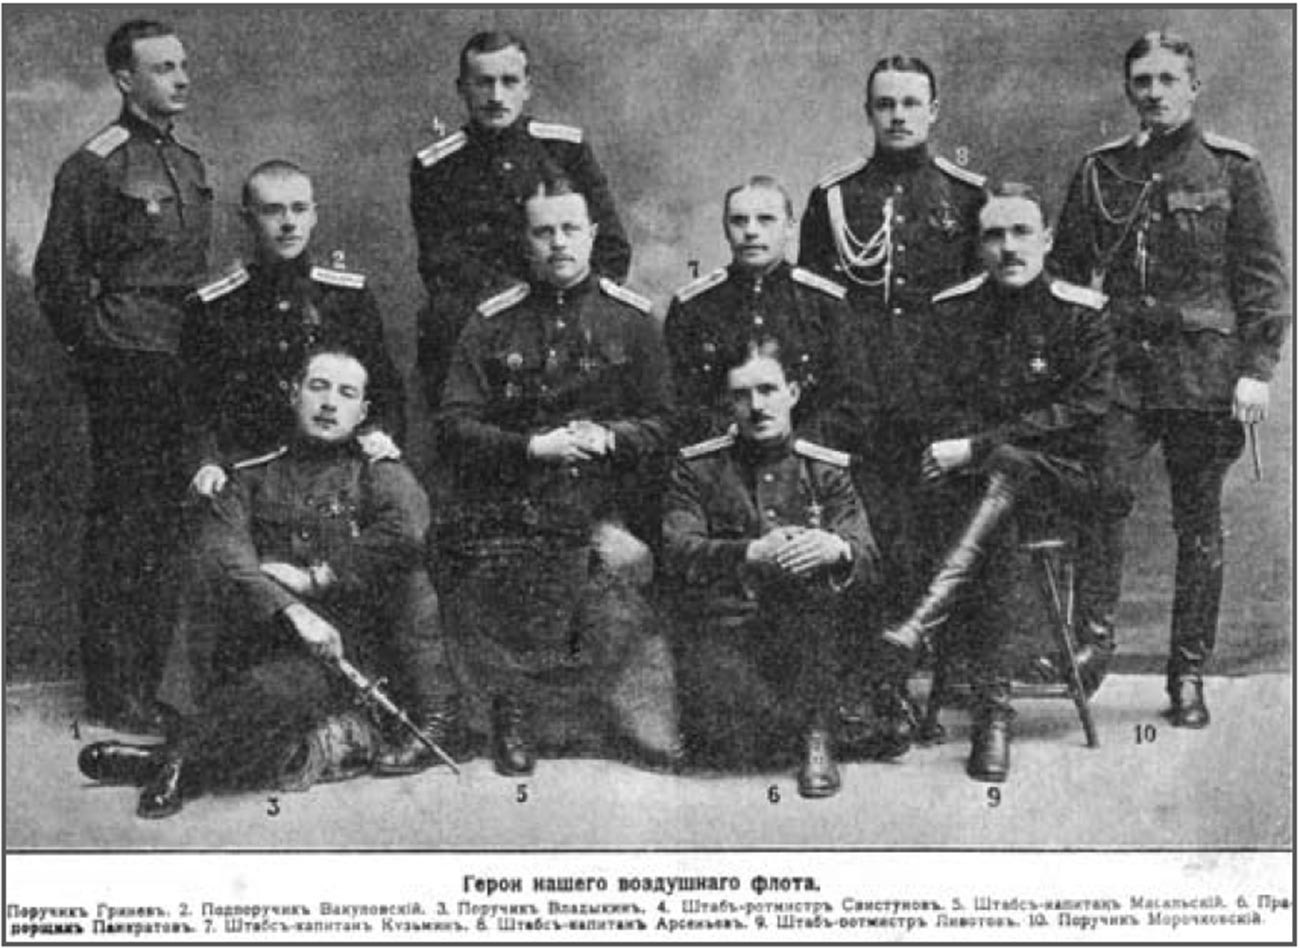 A photo of Russian hero pilots. Onisim Pankratov can be seen in the front row (center), seated on the floor